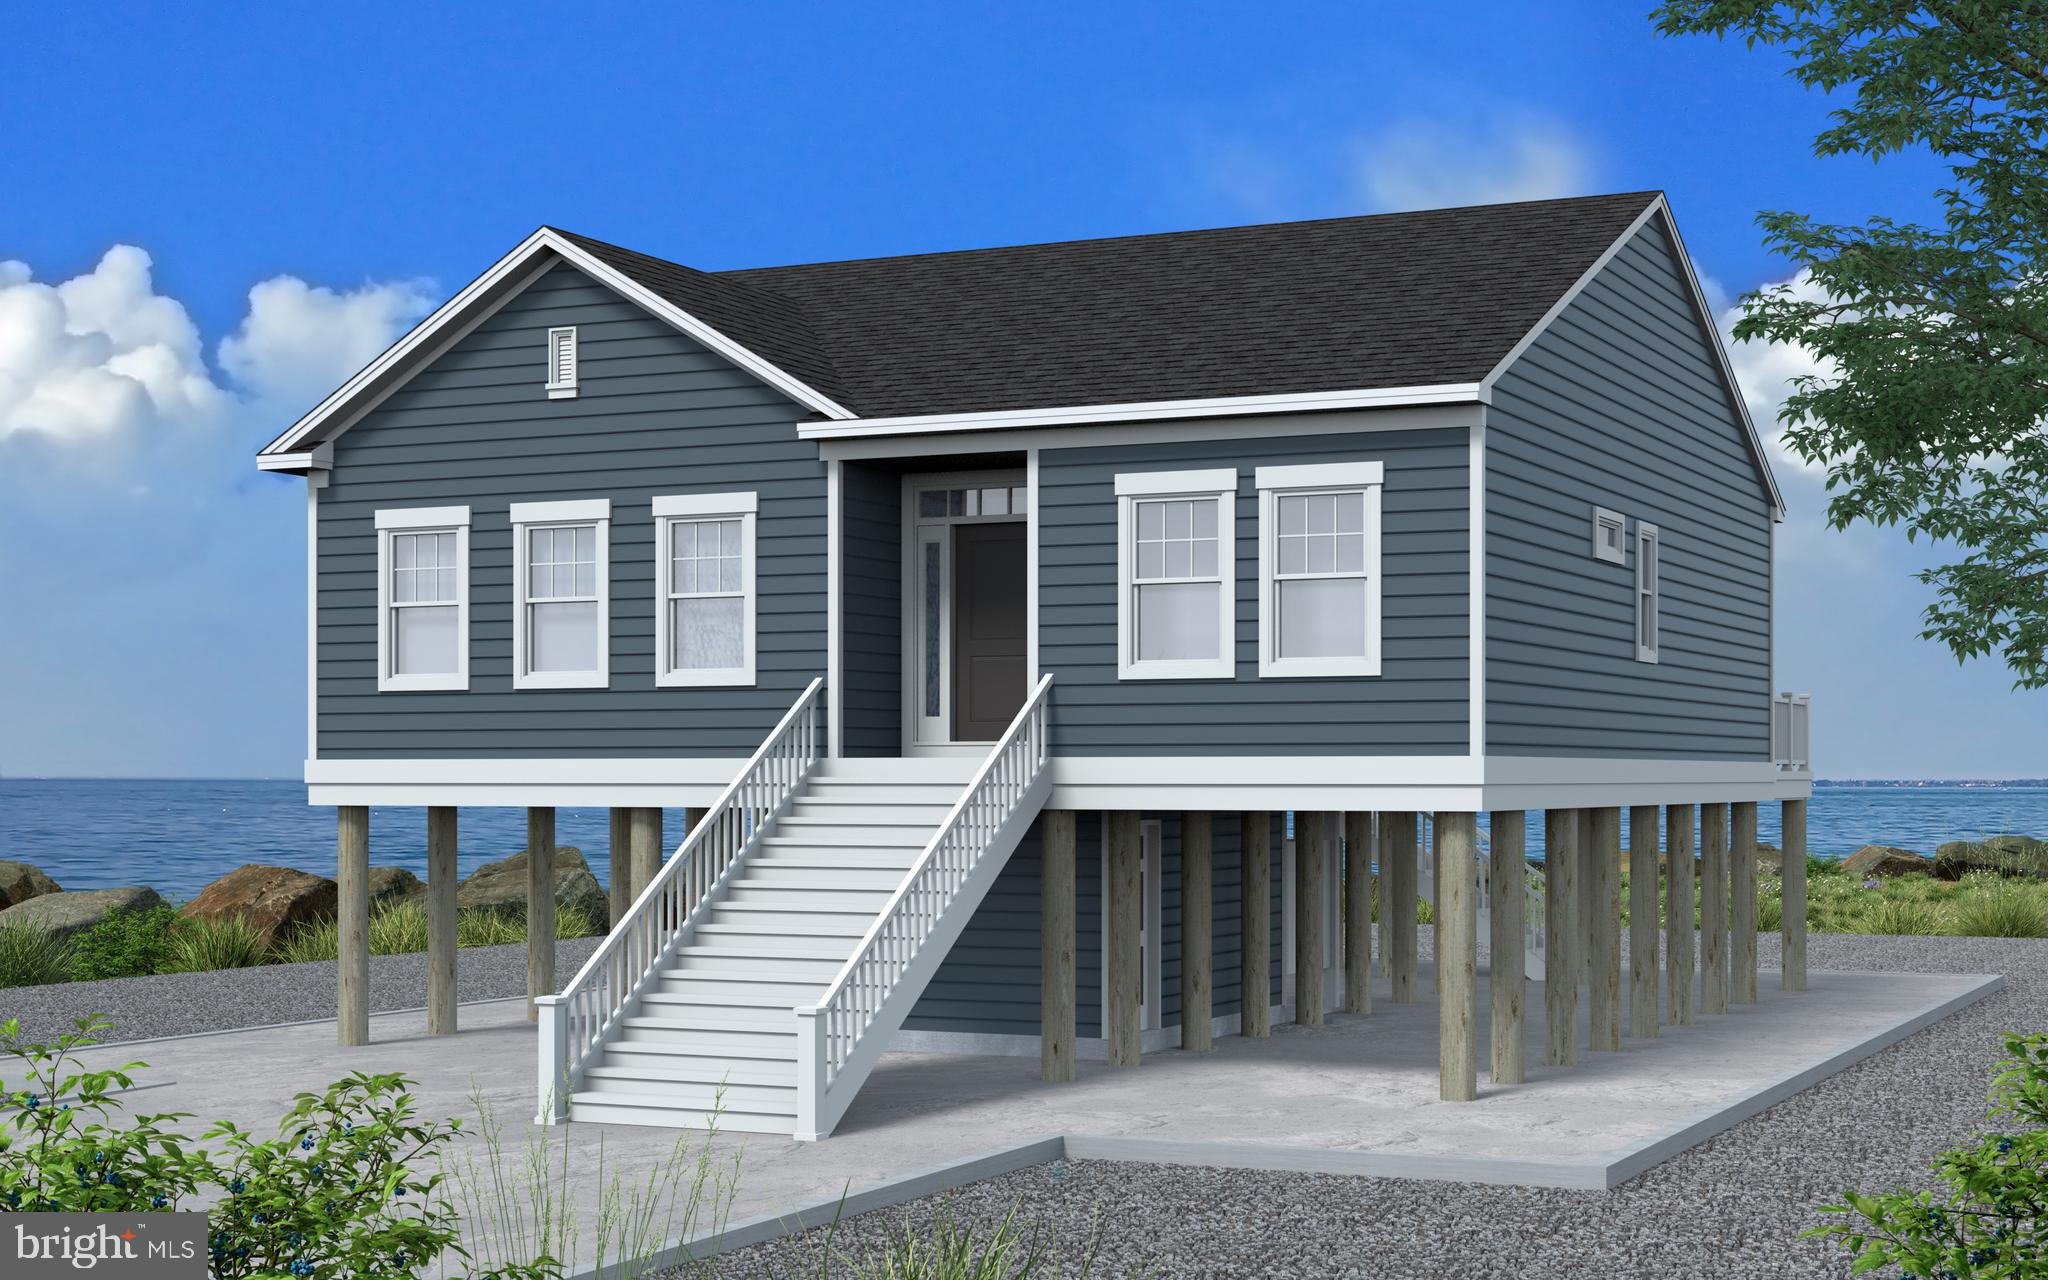 Coastal ll Model offered by Gemcraft Homes. Raised Beach style home offering views of the Chincoteag